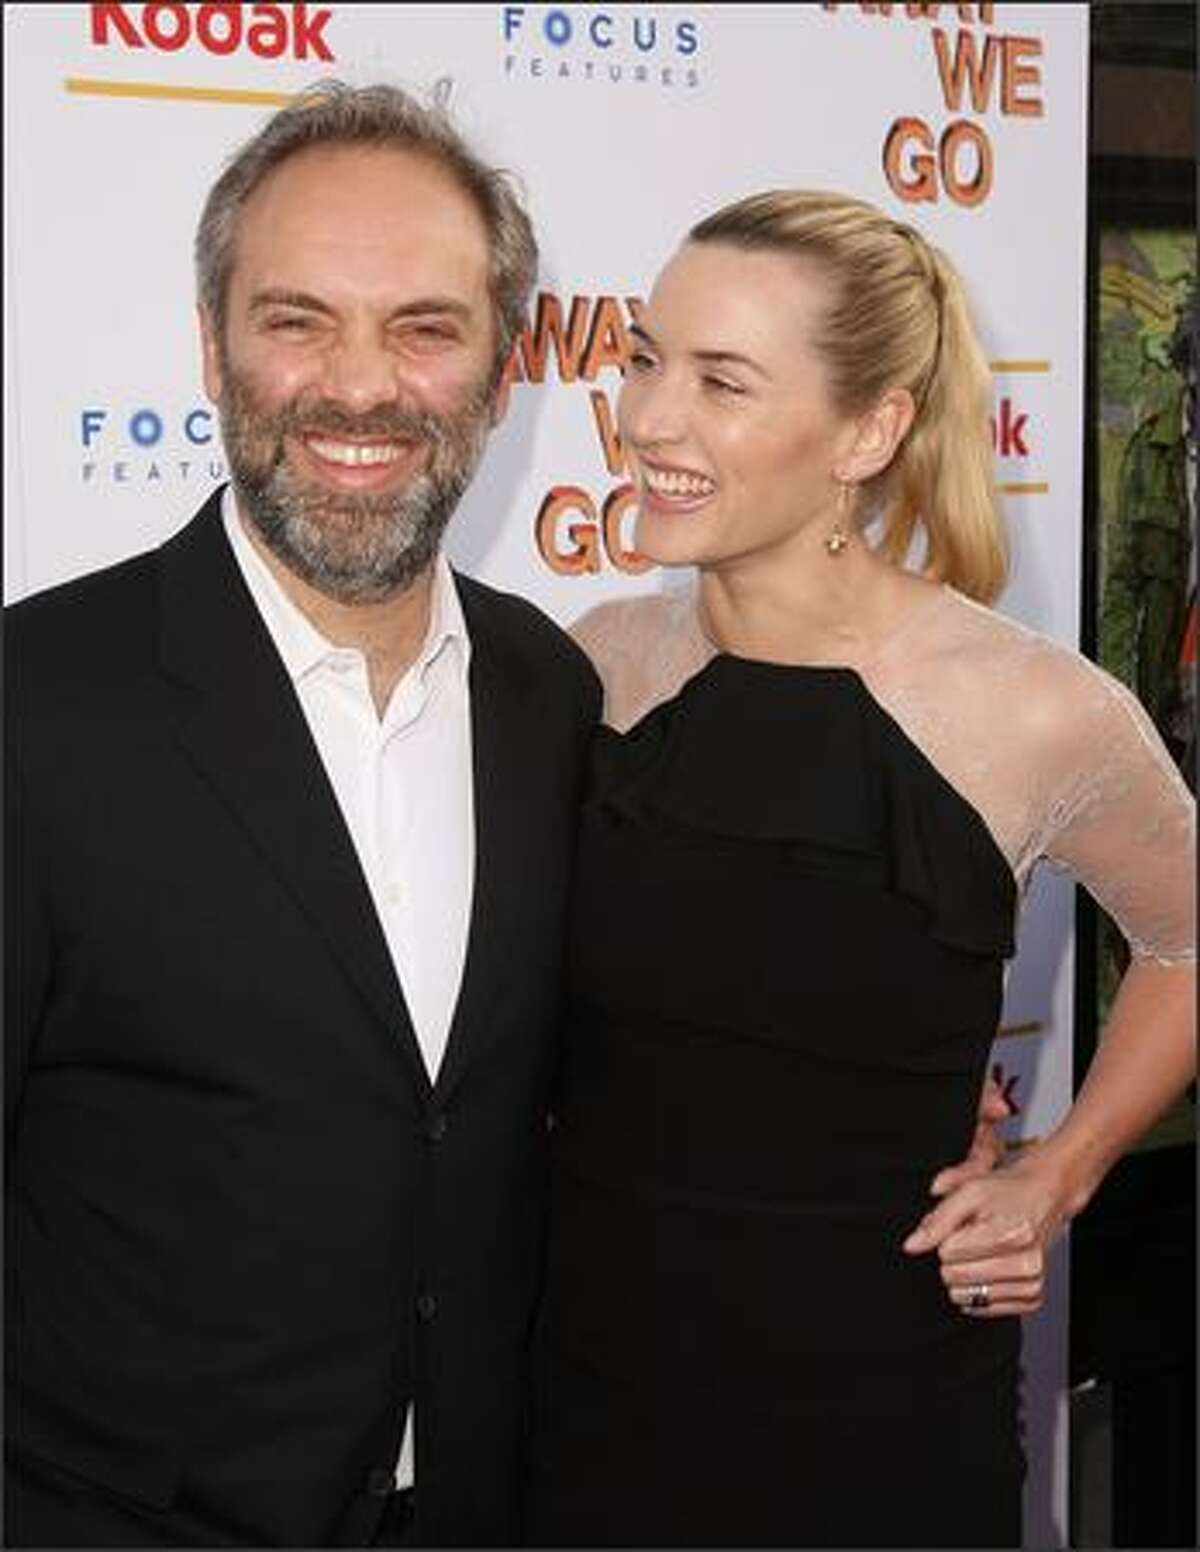 Director Sam Mendes and wife actress Kate Winslet attend a special New York screening of